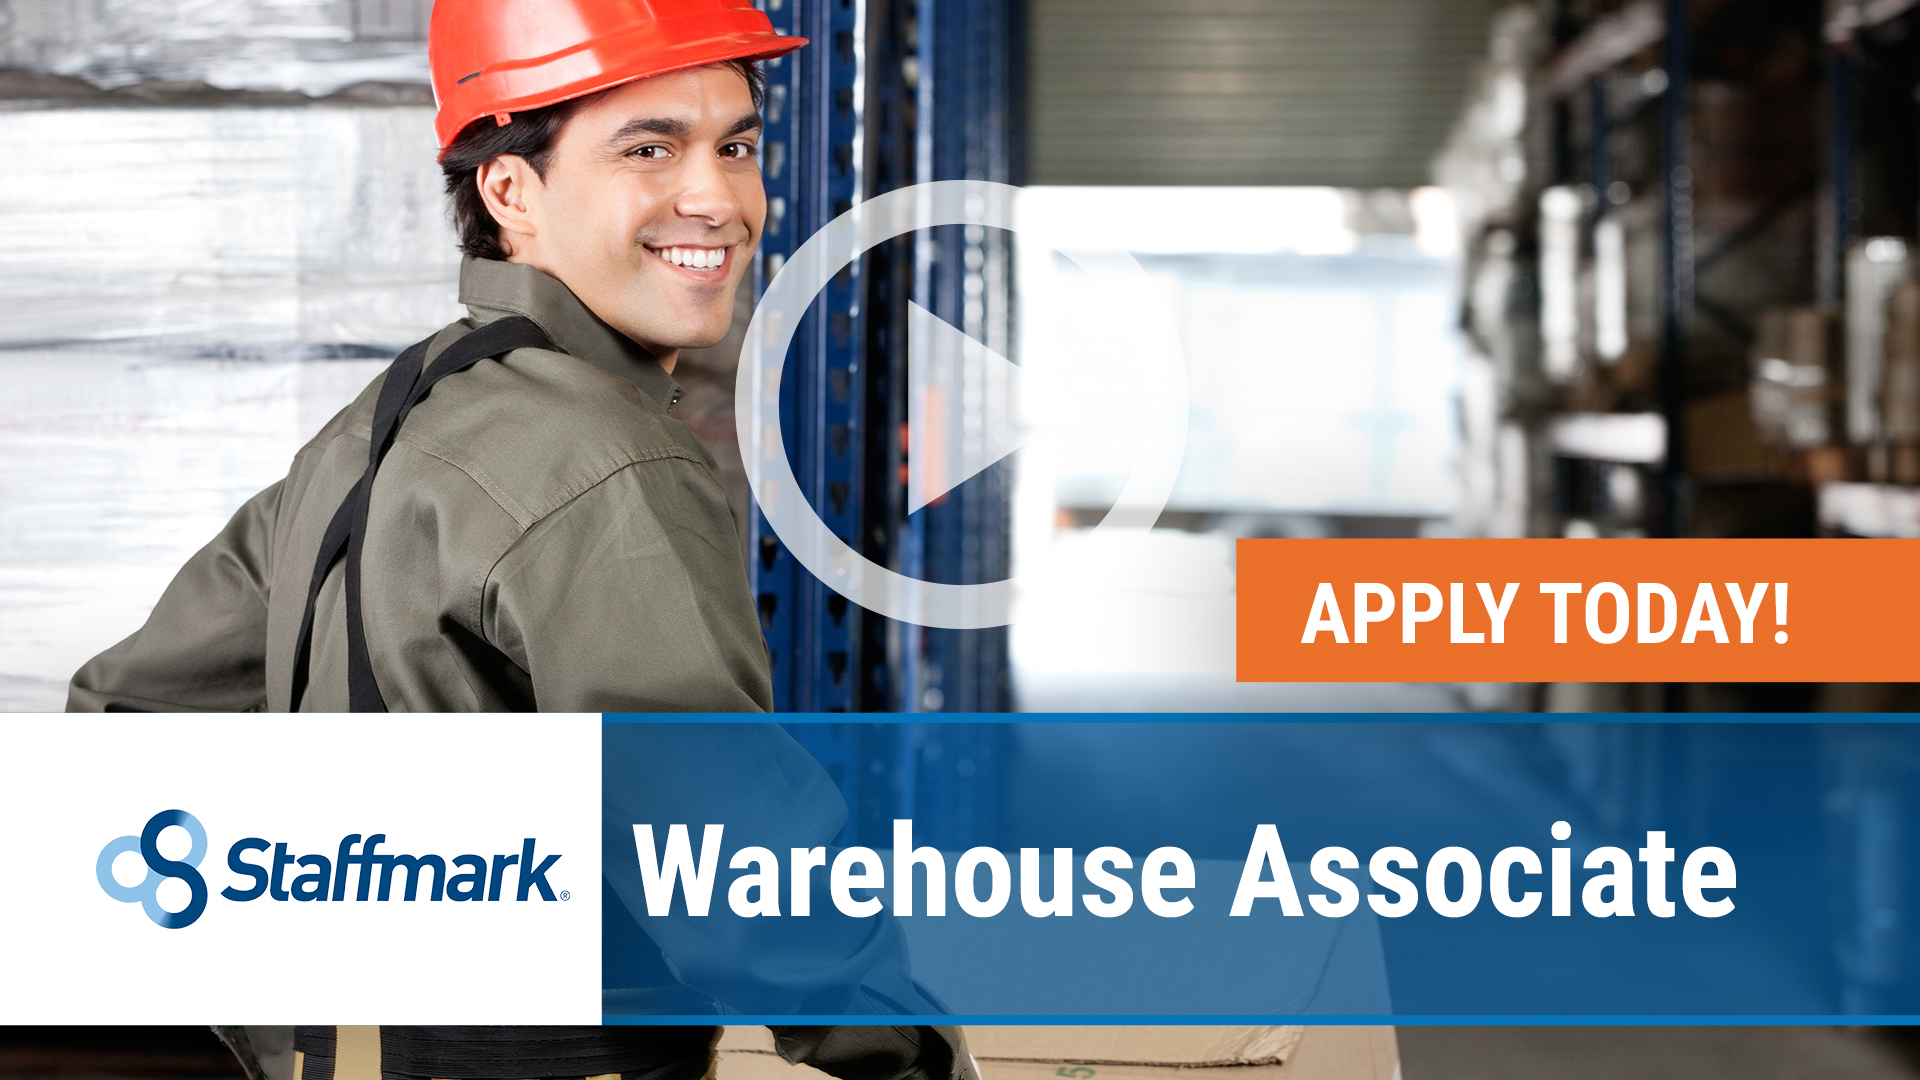 Watch our careers video for available job opening Warehouse Associate in Auburn, WA